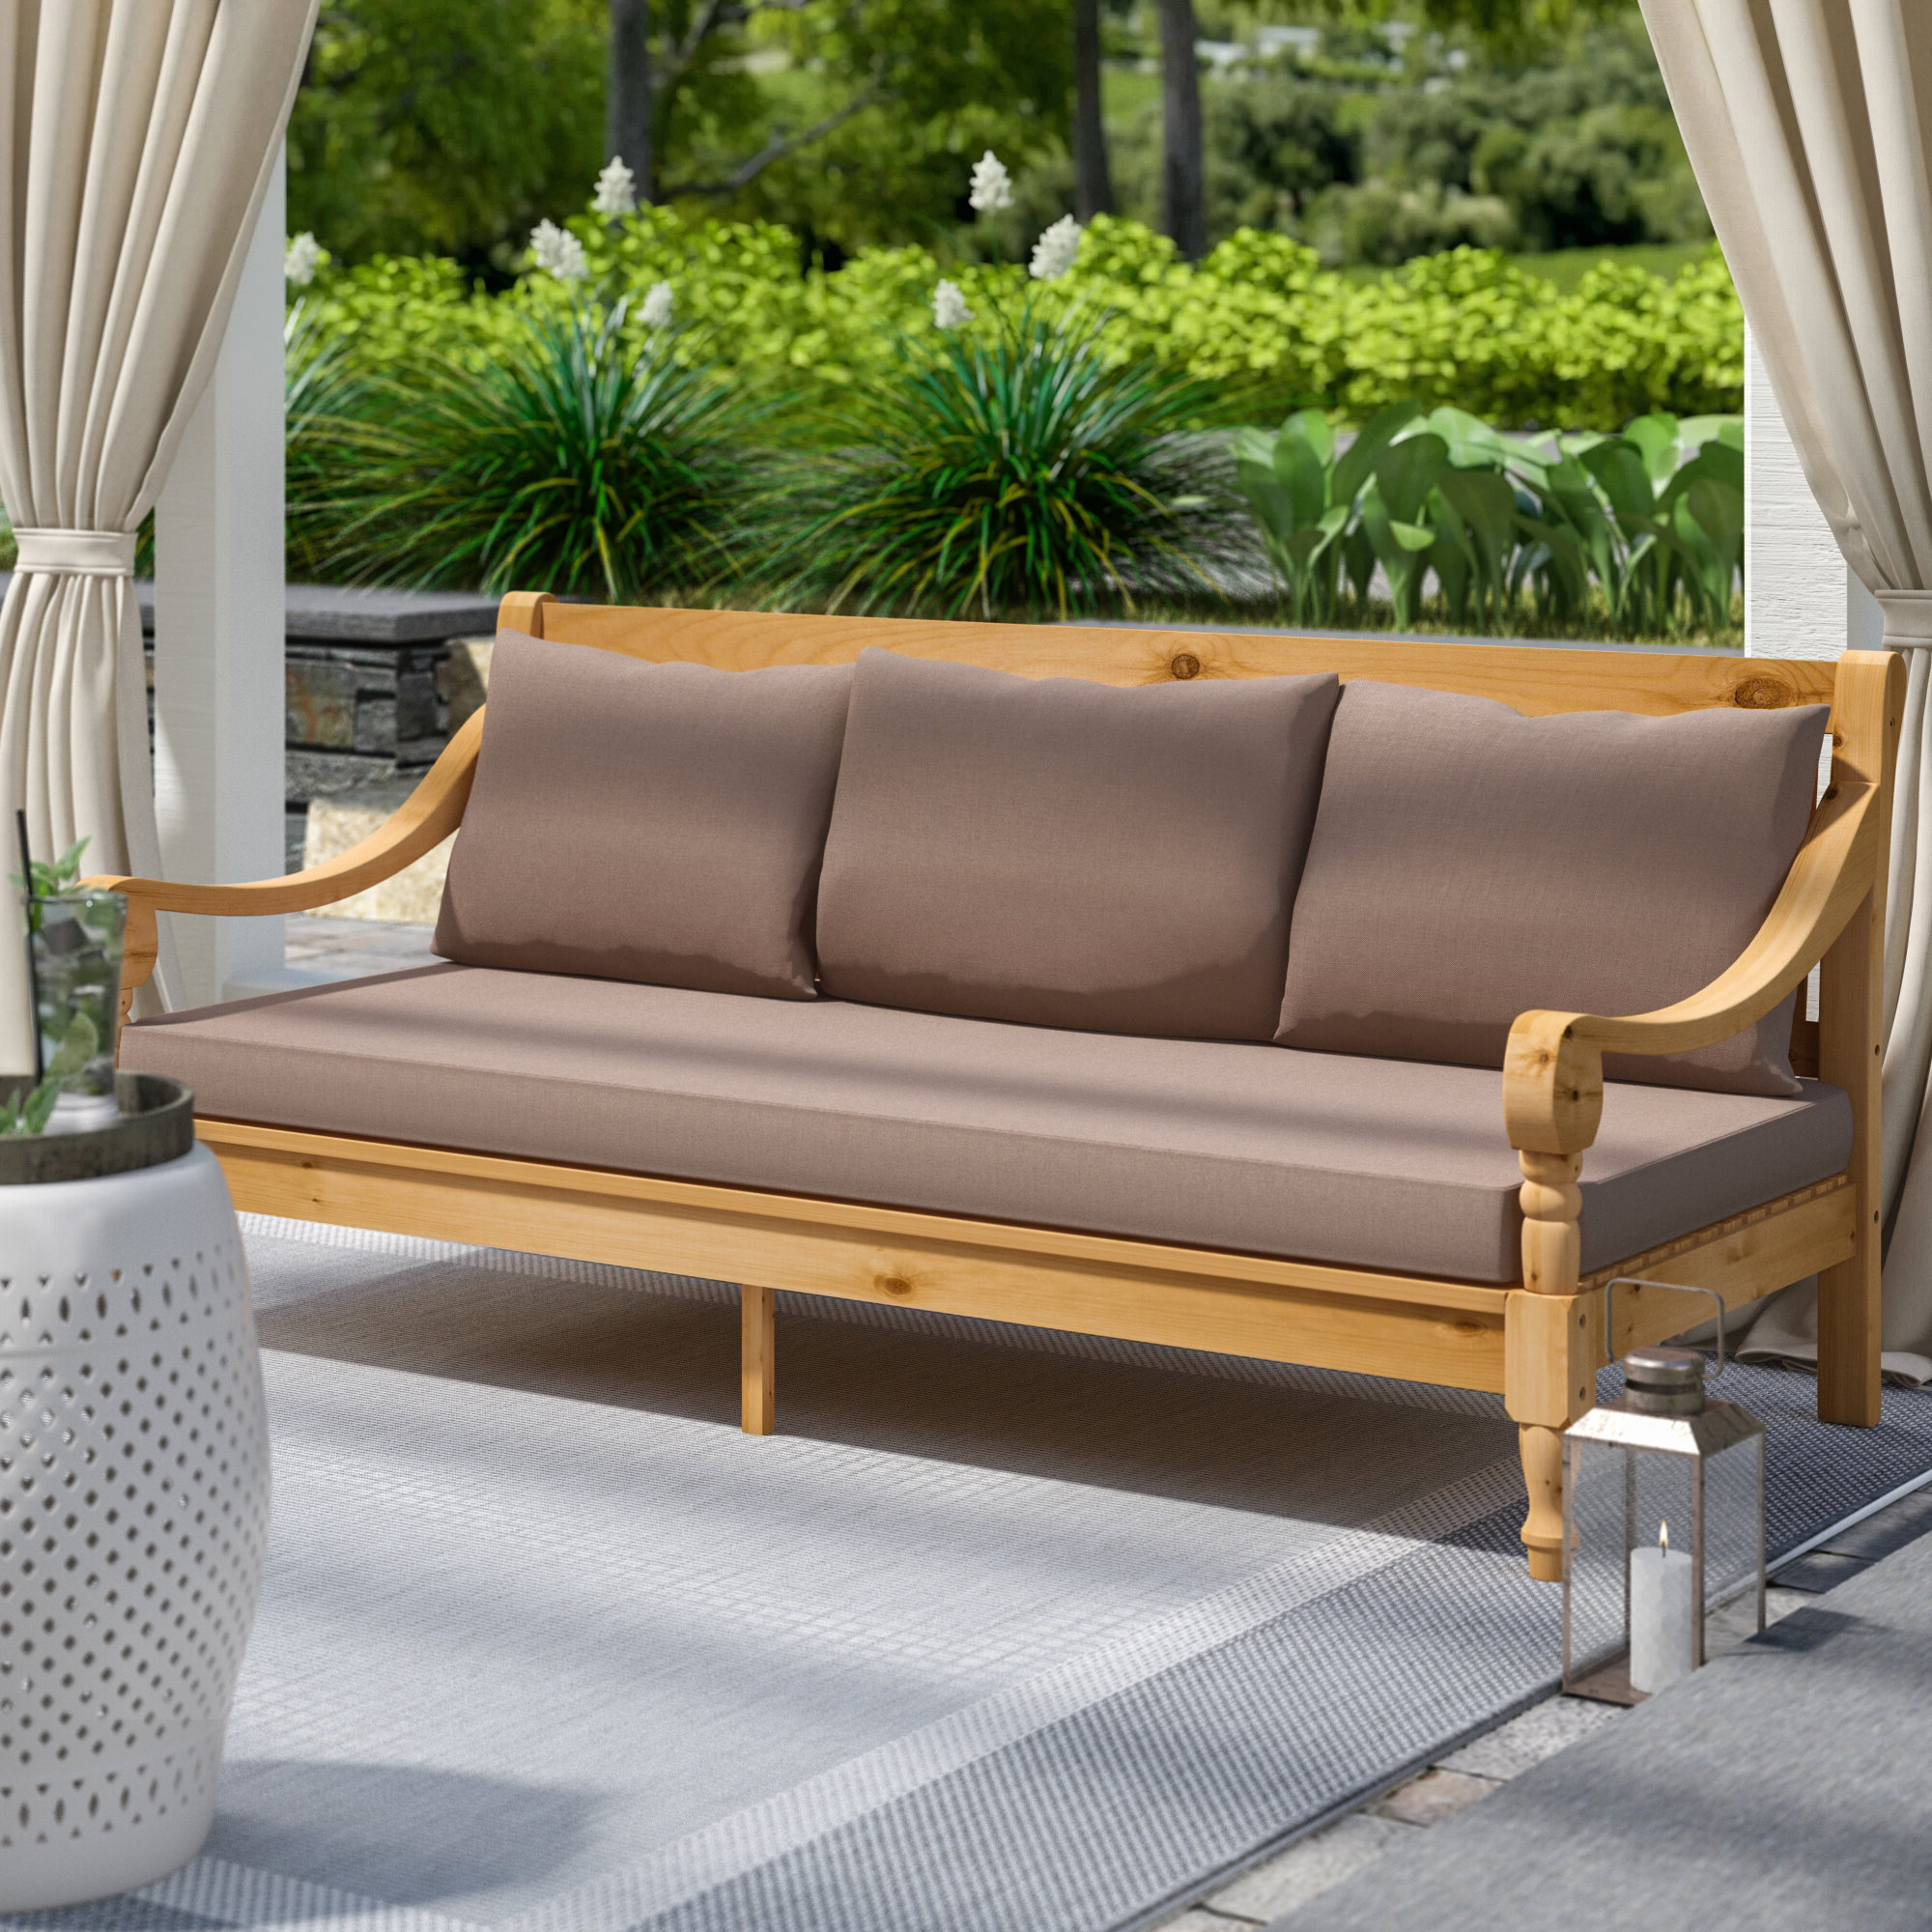 Bodine Patio Daybeds With Cushions With Regard To Popular Beachcrest Home Roush Teak Patio Daybed With Cushions (View 8 of 25)